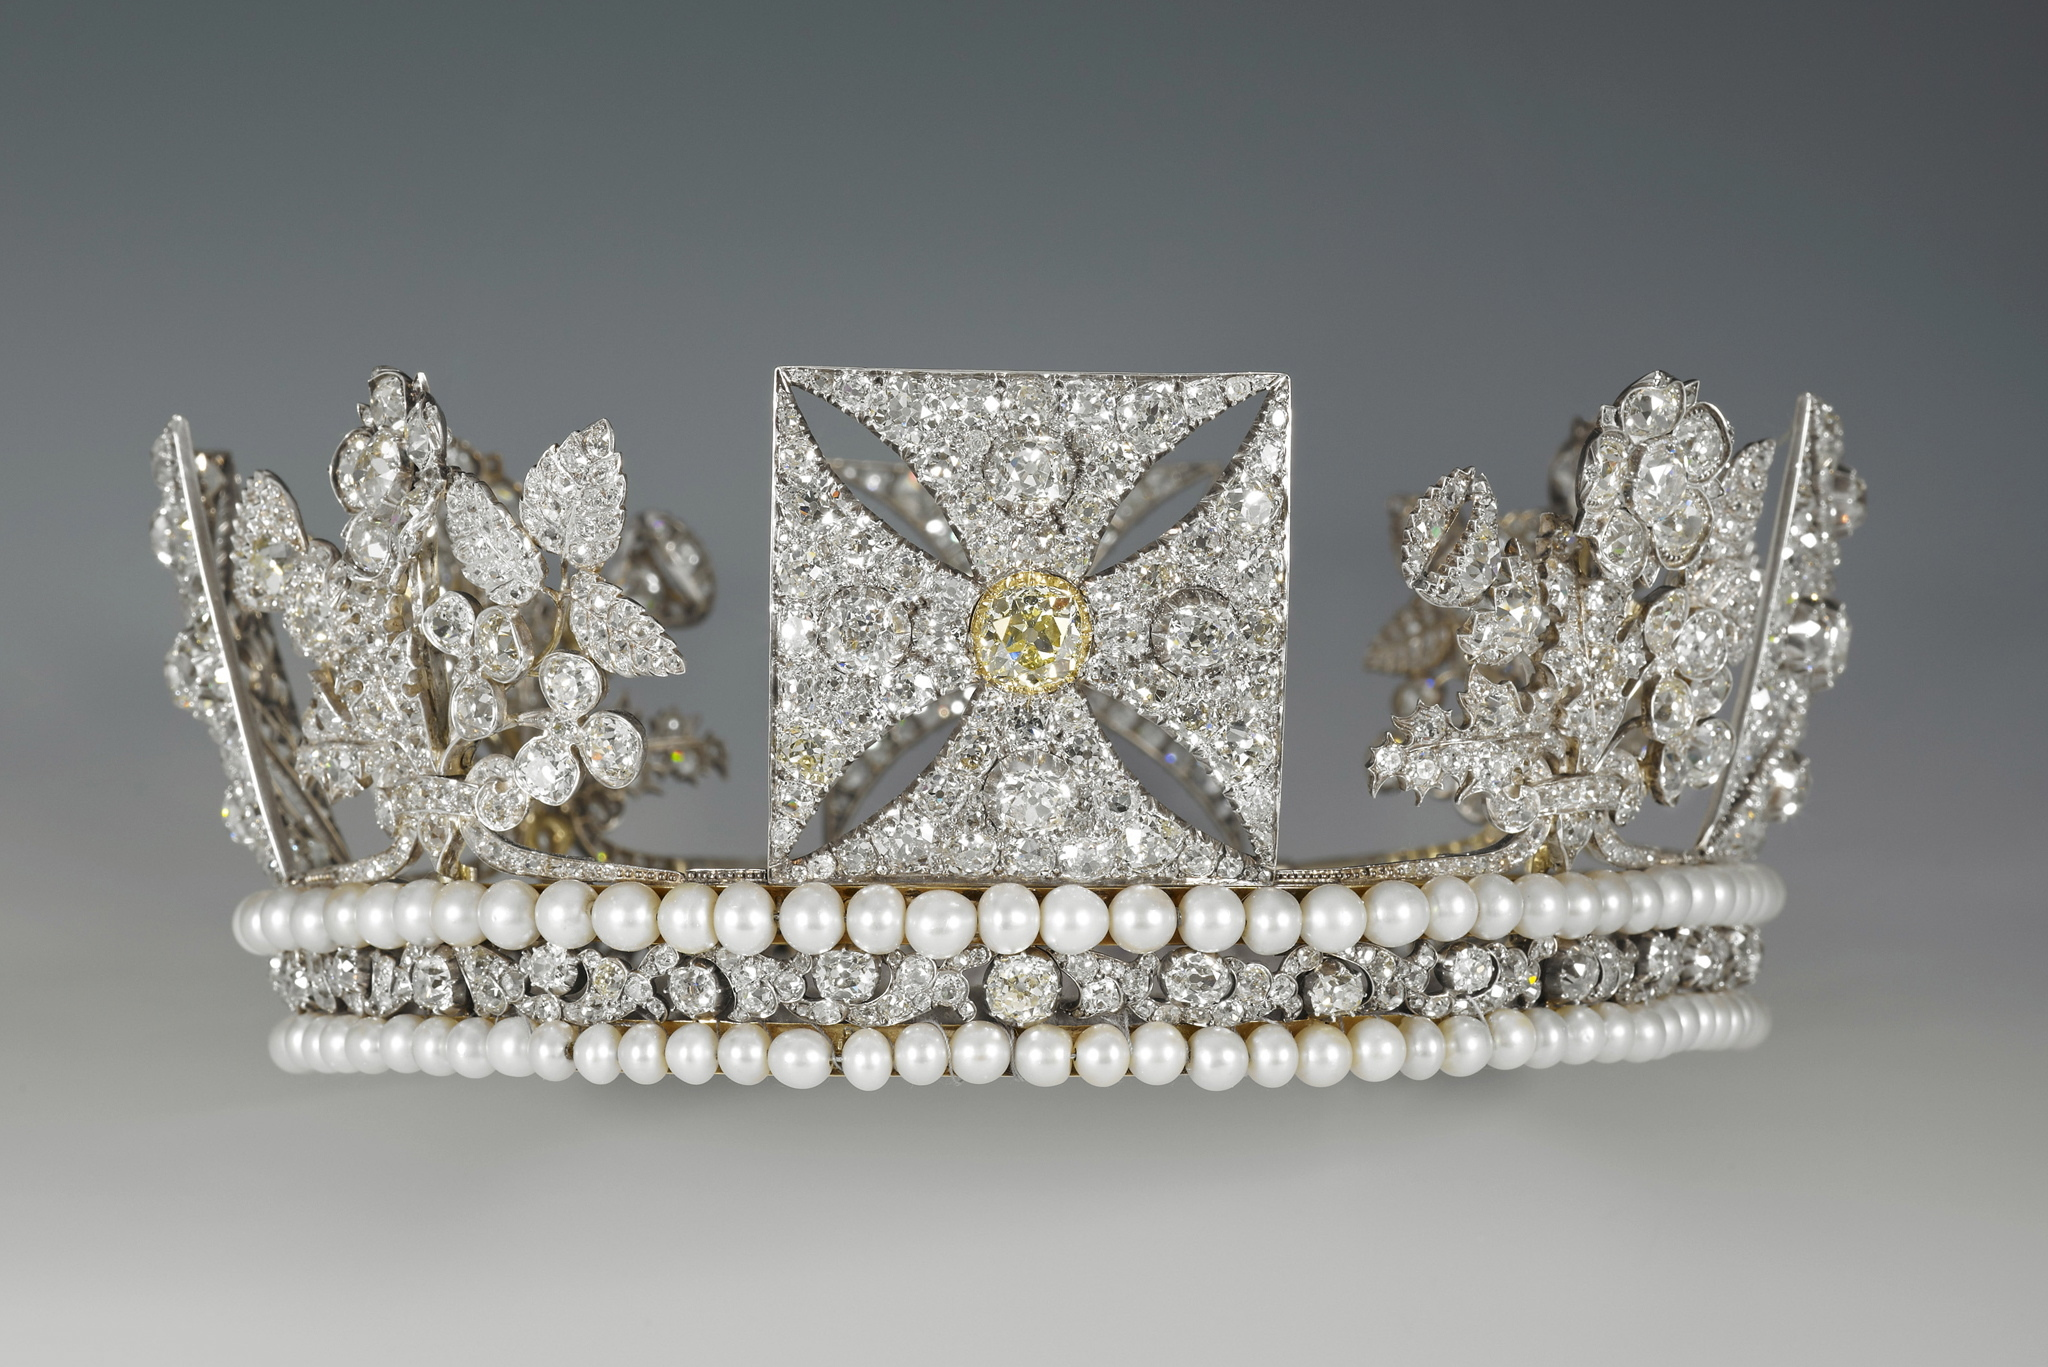 Buckingham Palace Summer Opening The Diamond Diadem